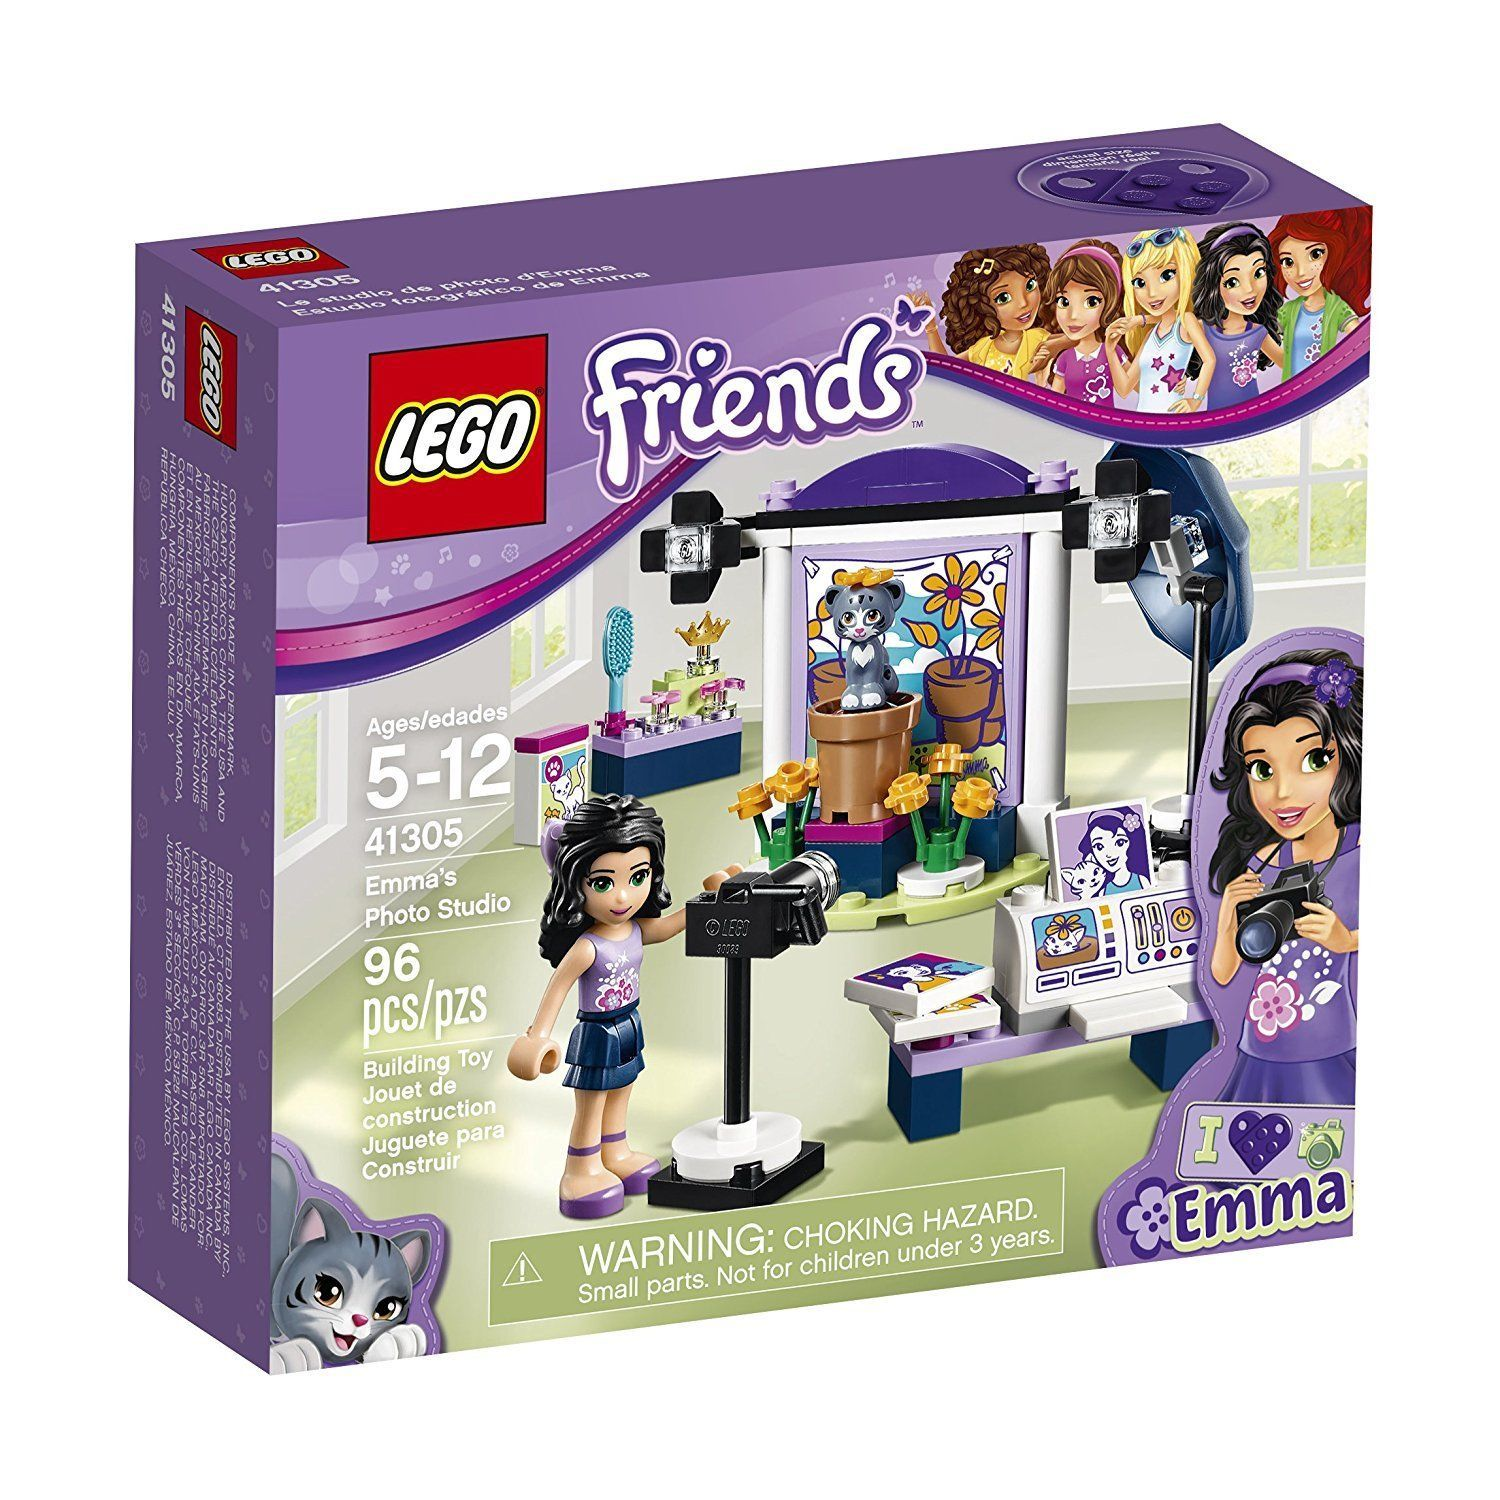 LEGO Friends Emma's Photo Studio 41305 Building Toy Kit [New]